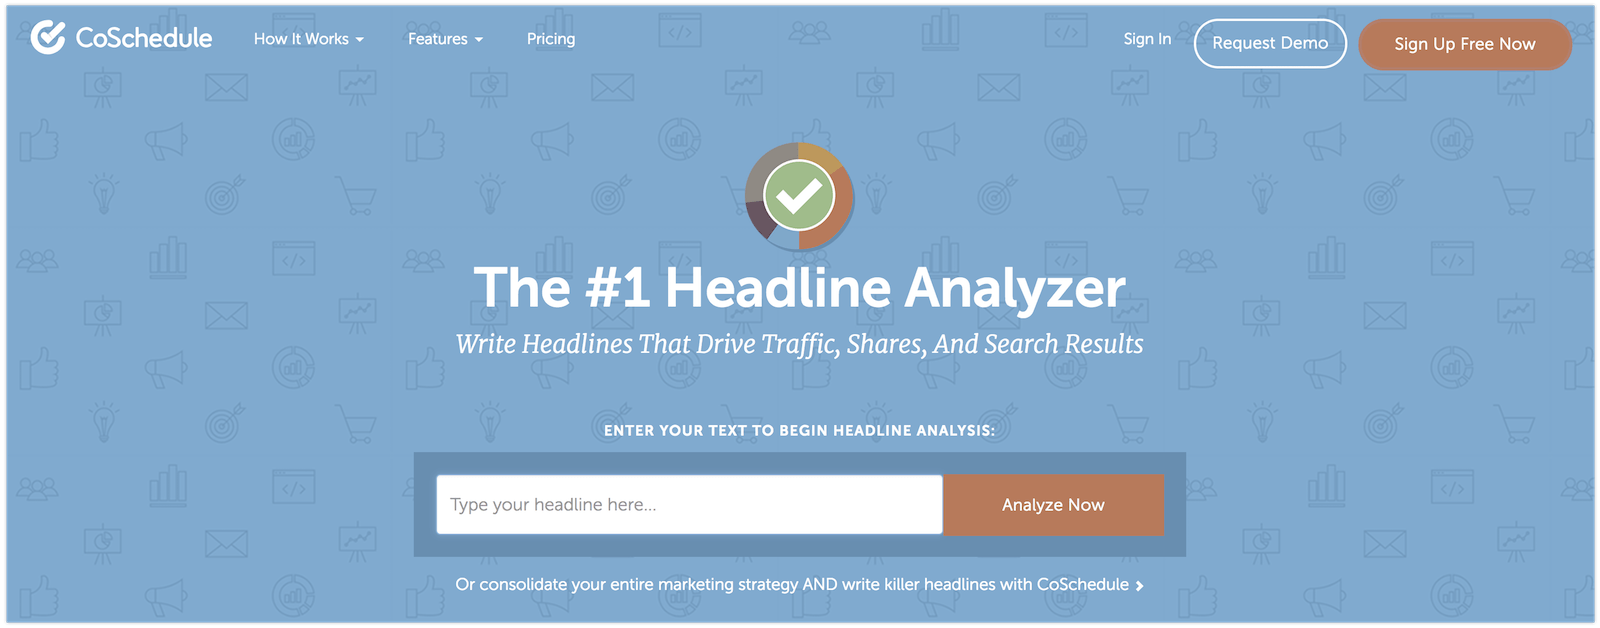 Coschedule-Headline-Analyzer-Review